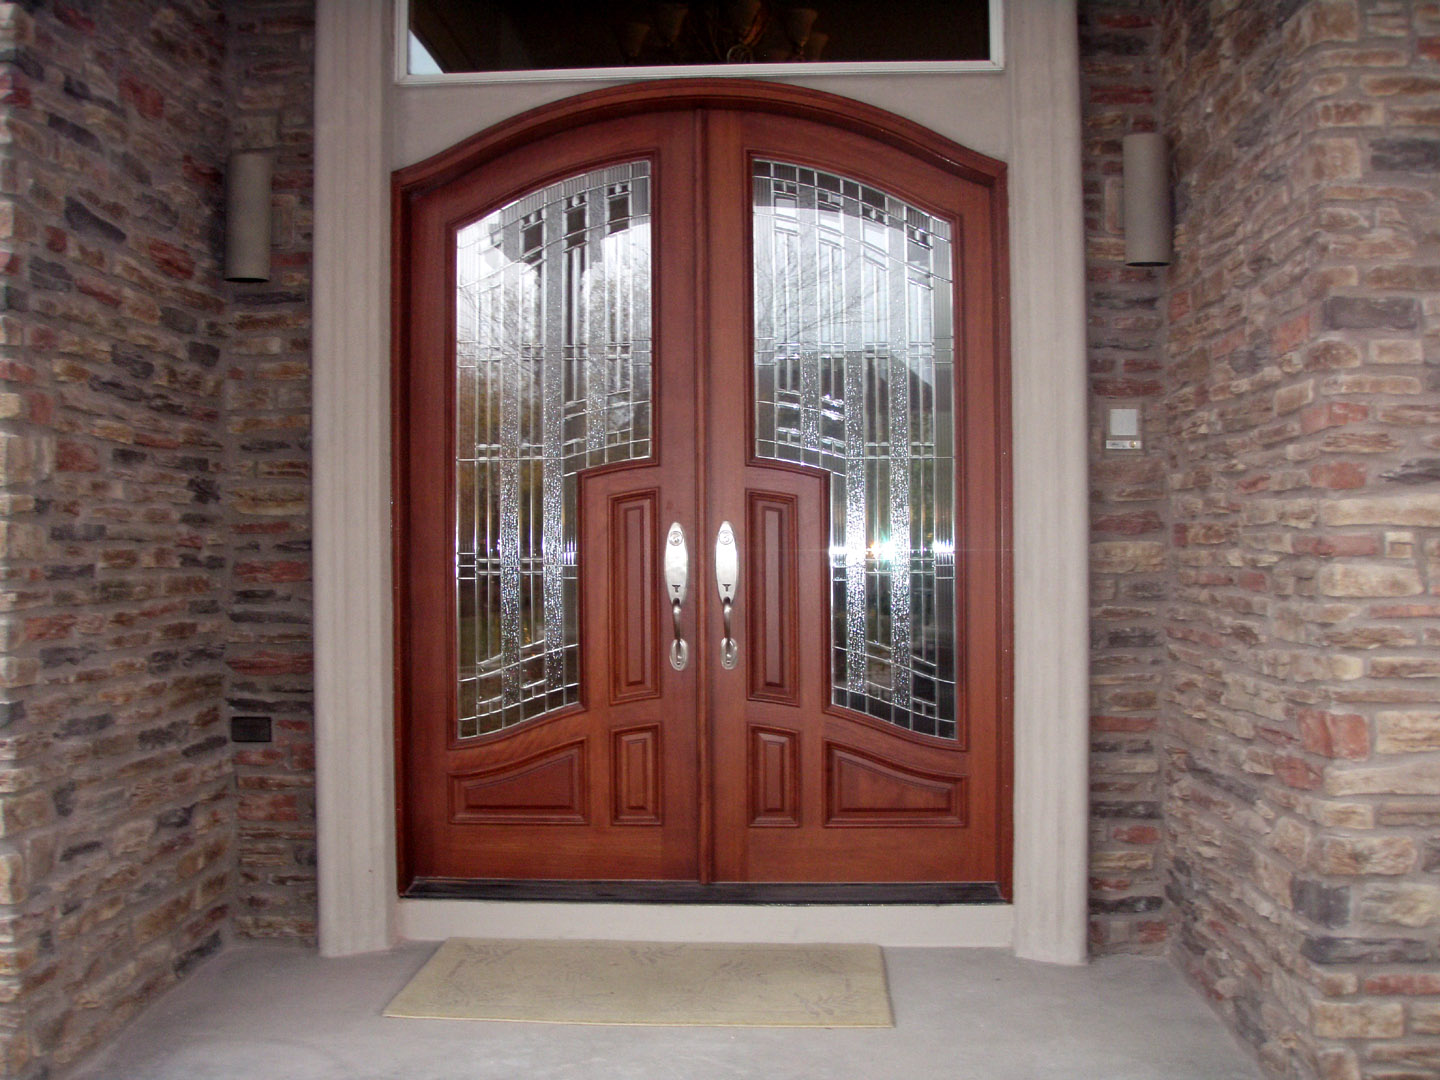 1080 #693F38 ROUND TOP DOORS – ARCHED TOP DOORS – RADIUS DOORS FOR   IN  save image Arch Doors Exterior 39771440